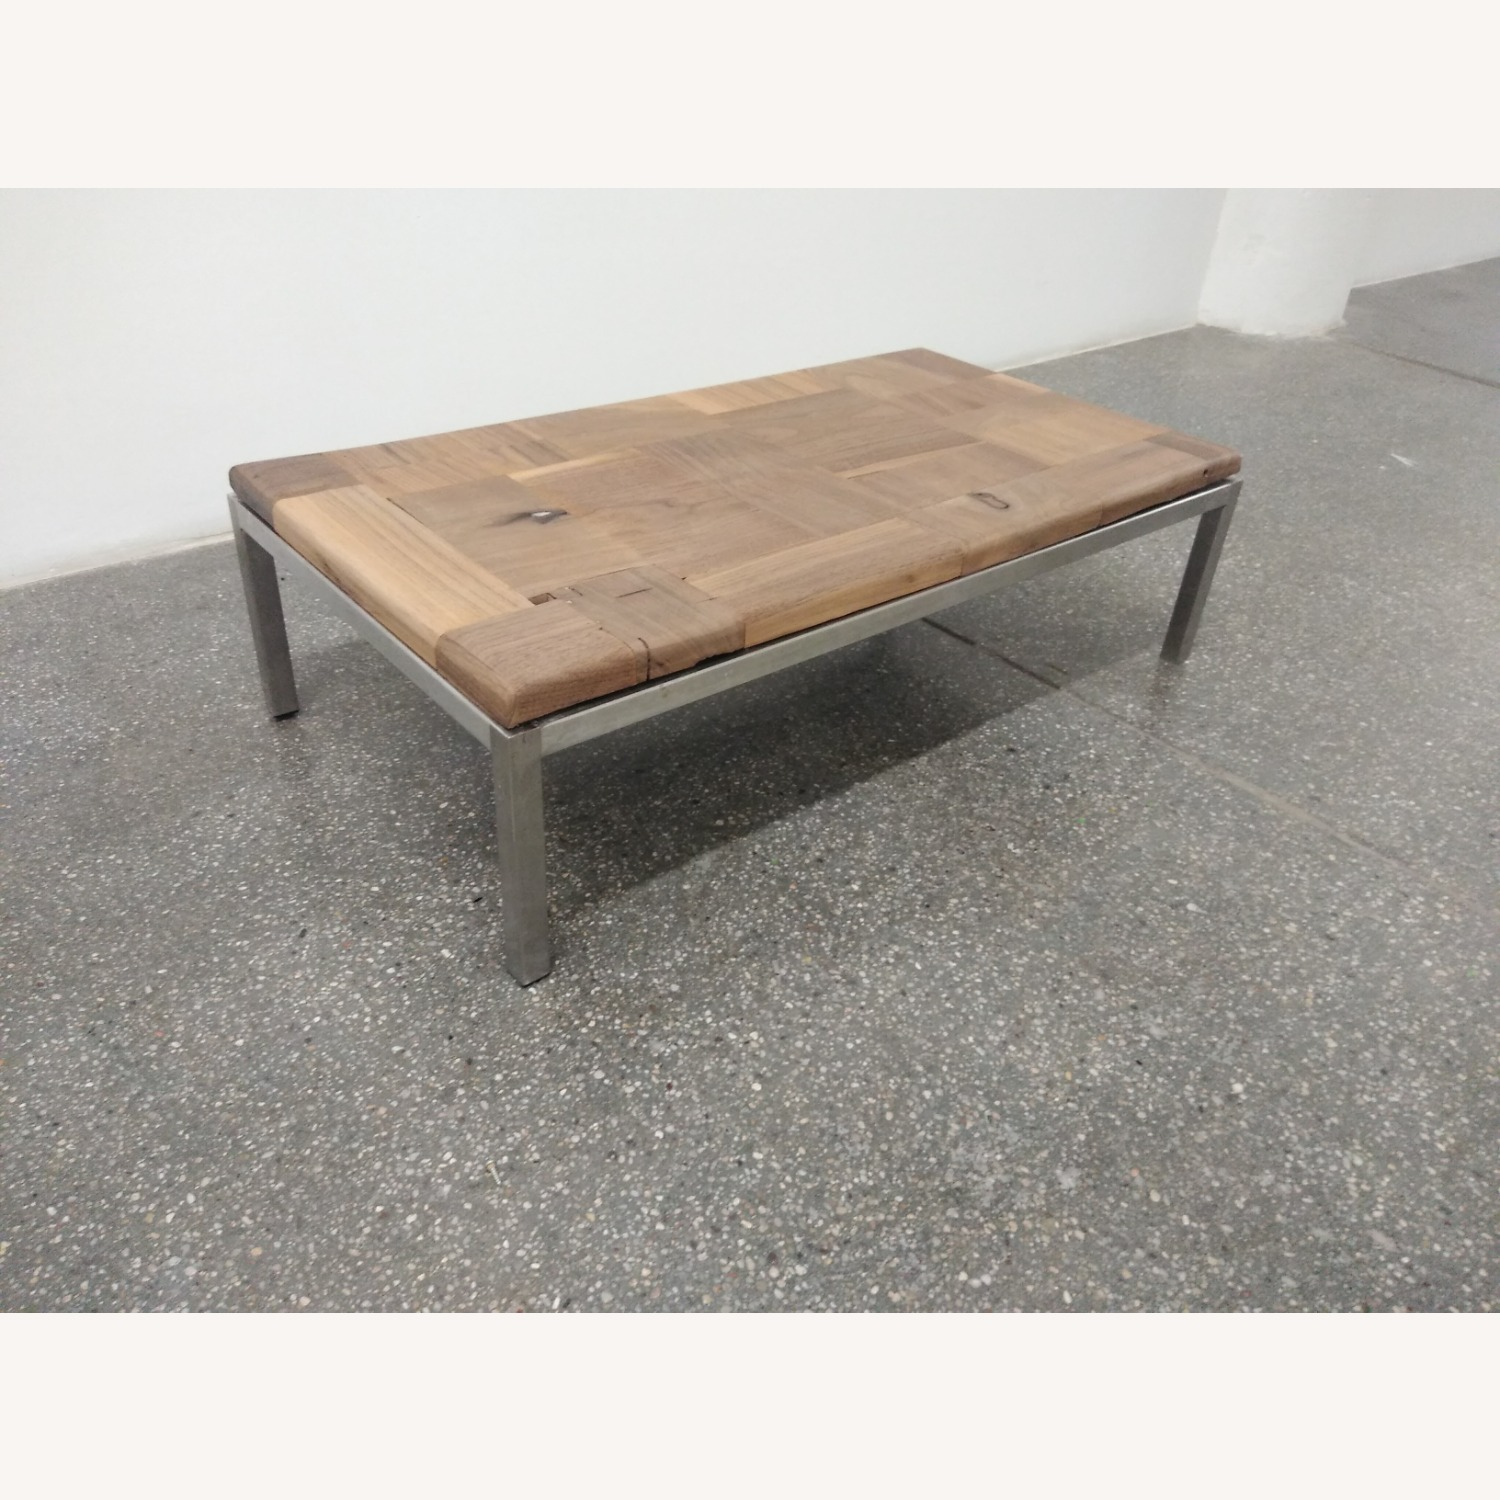 Restoration Hardware Solid Walnut Mosaic Coffee Table - image-9